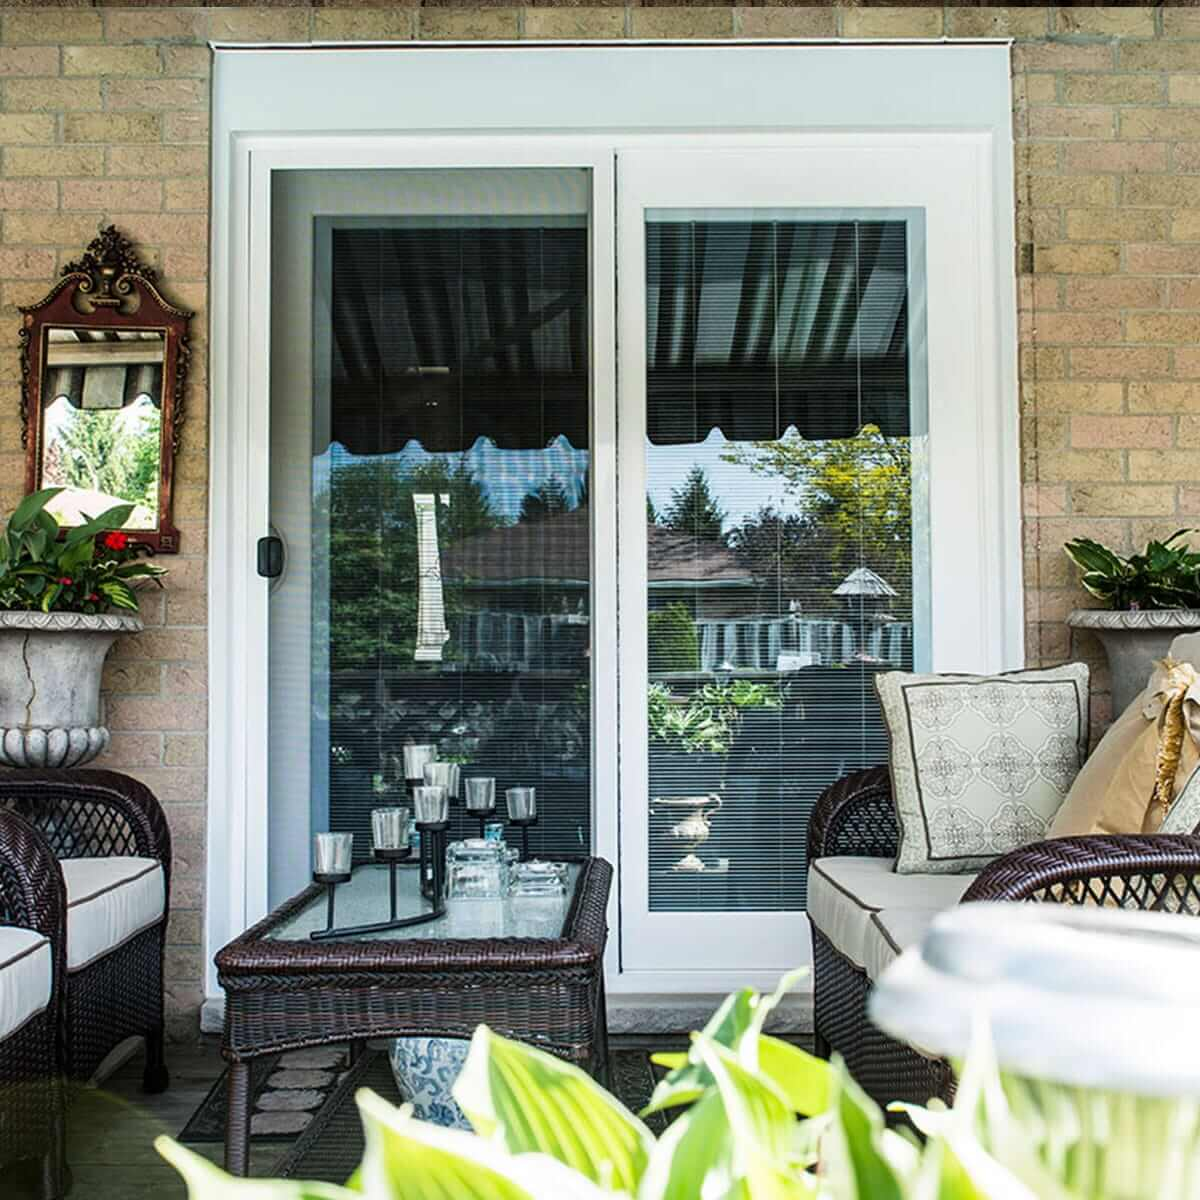 Sliding Glass Patio Doors With White Trim & Fibreglass Door Systems - See Our Stain Selection | Centennial pezcame.com